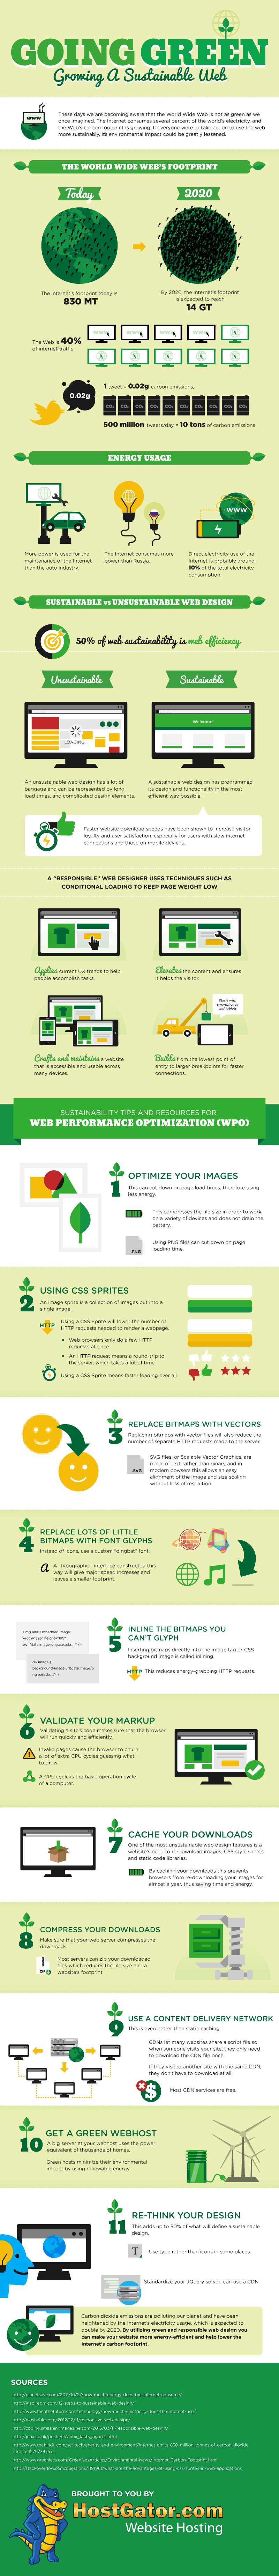 going-gree-growing-a-sustainable-web-infographic